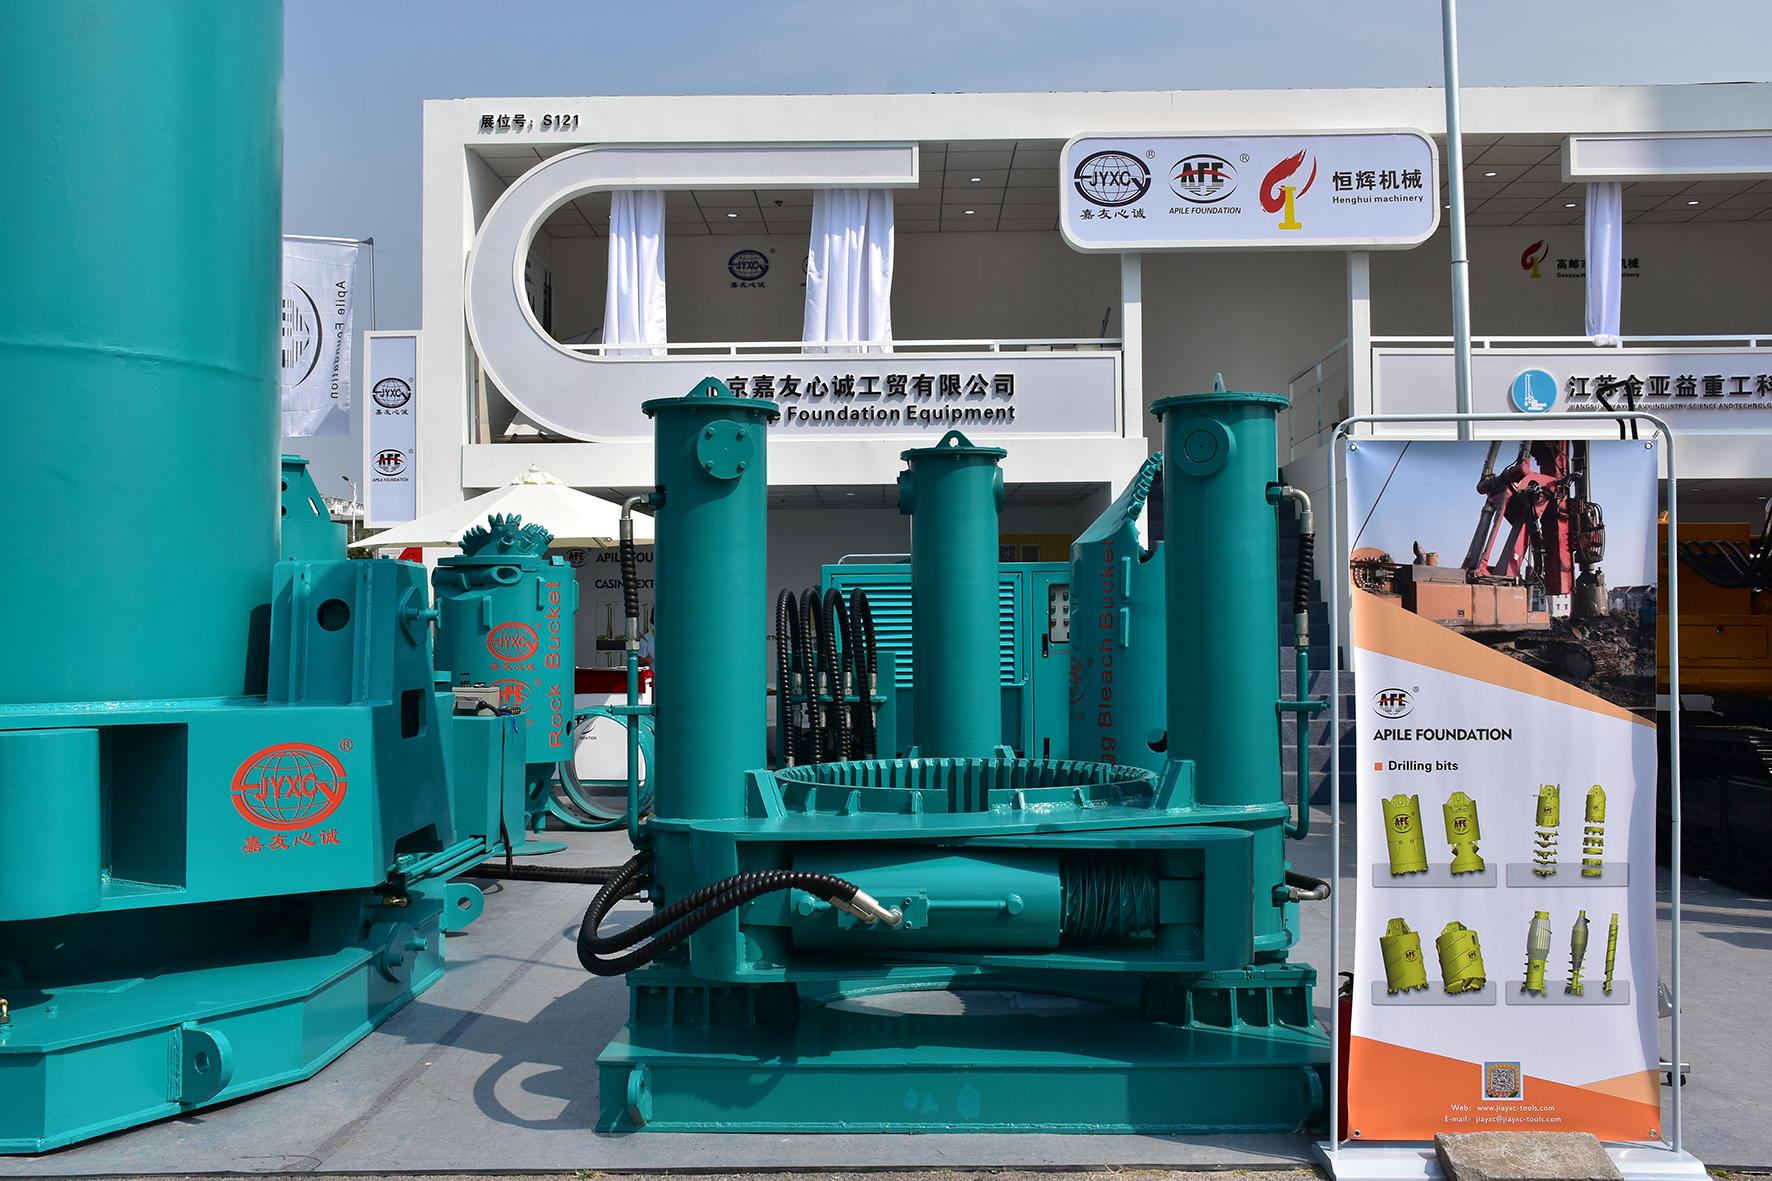 Apile Foundation appeared at the Beijing International Construction Machinery Exhibition